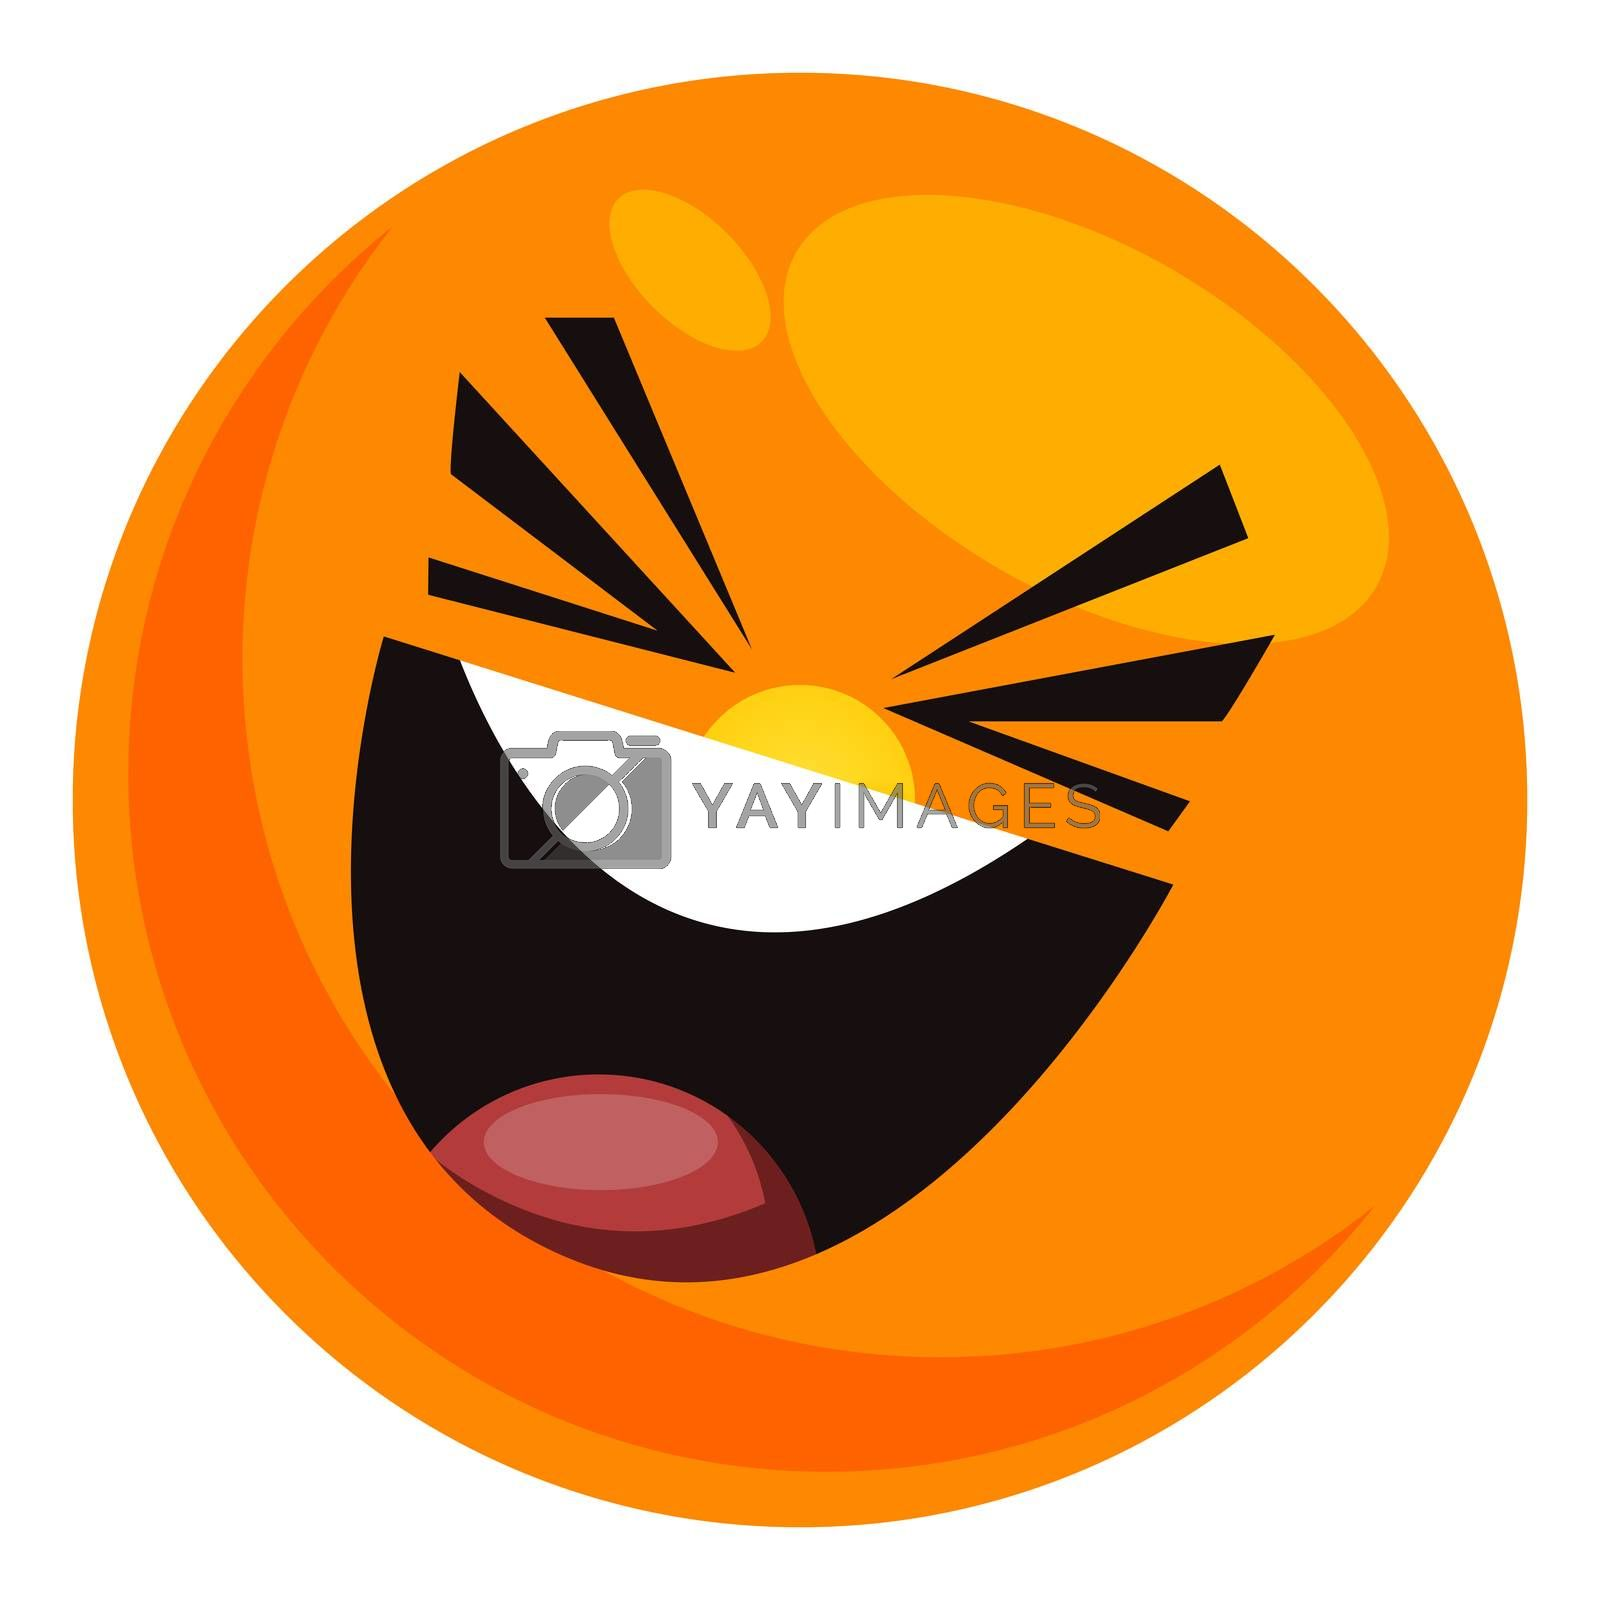 Laughing hard smiley, illustration, vector on white background